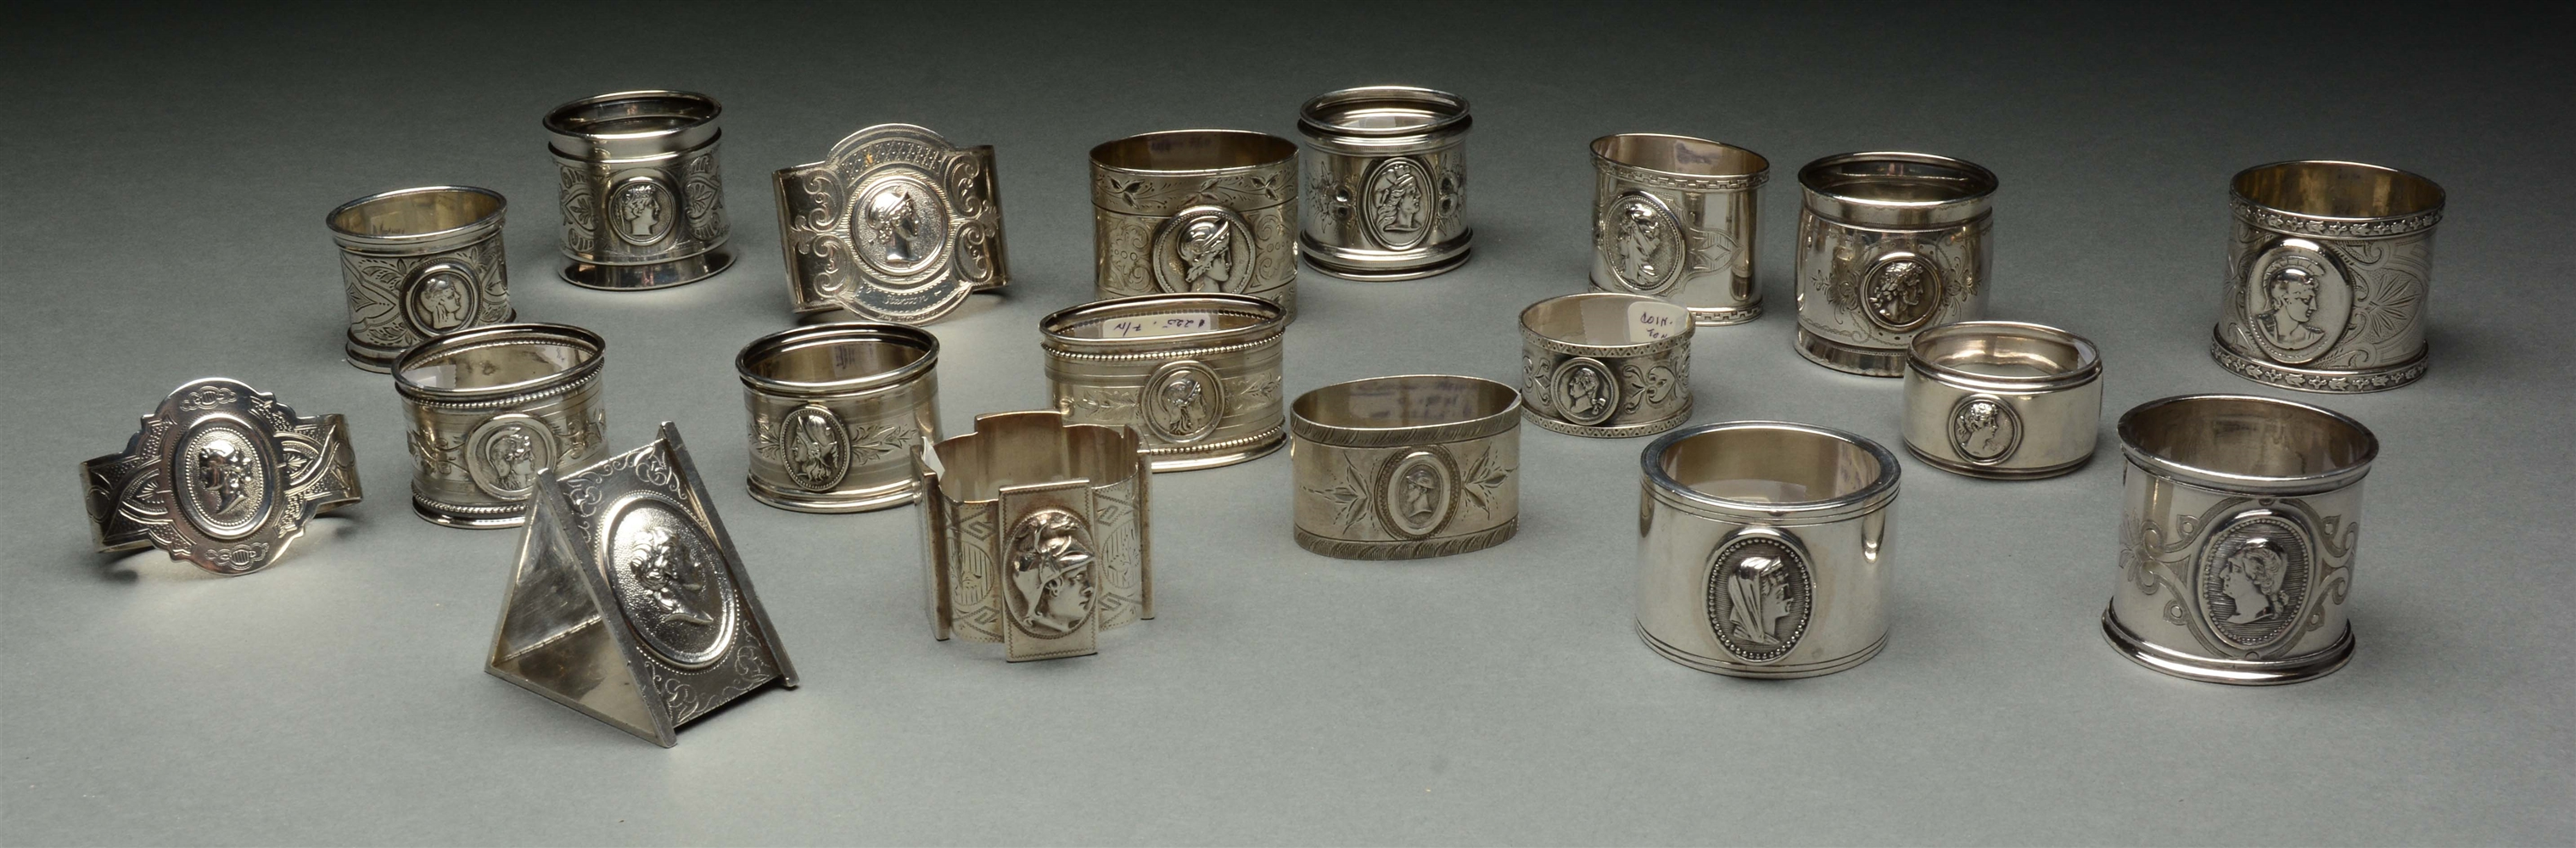 Lot of 20: Coin Medallion Silver Napkin Rings.